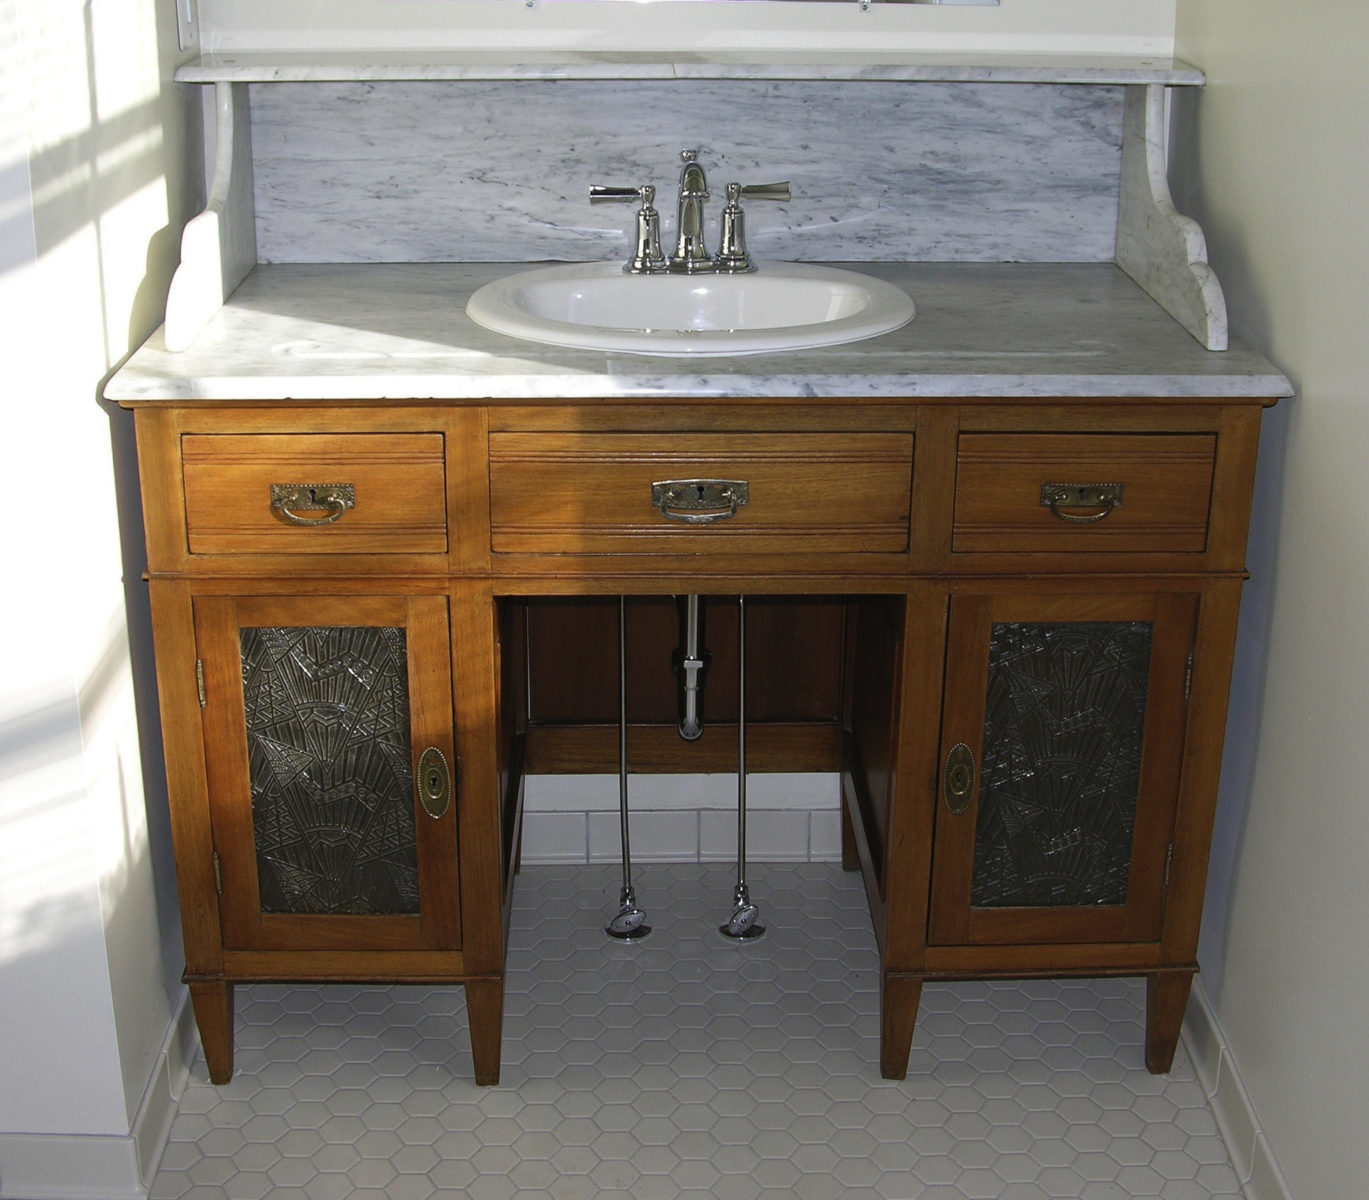 vanity, wash stand, custom, vanity, marble top, glass doors, re-purpose, vintage, old desk, sink, re-use, wood,